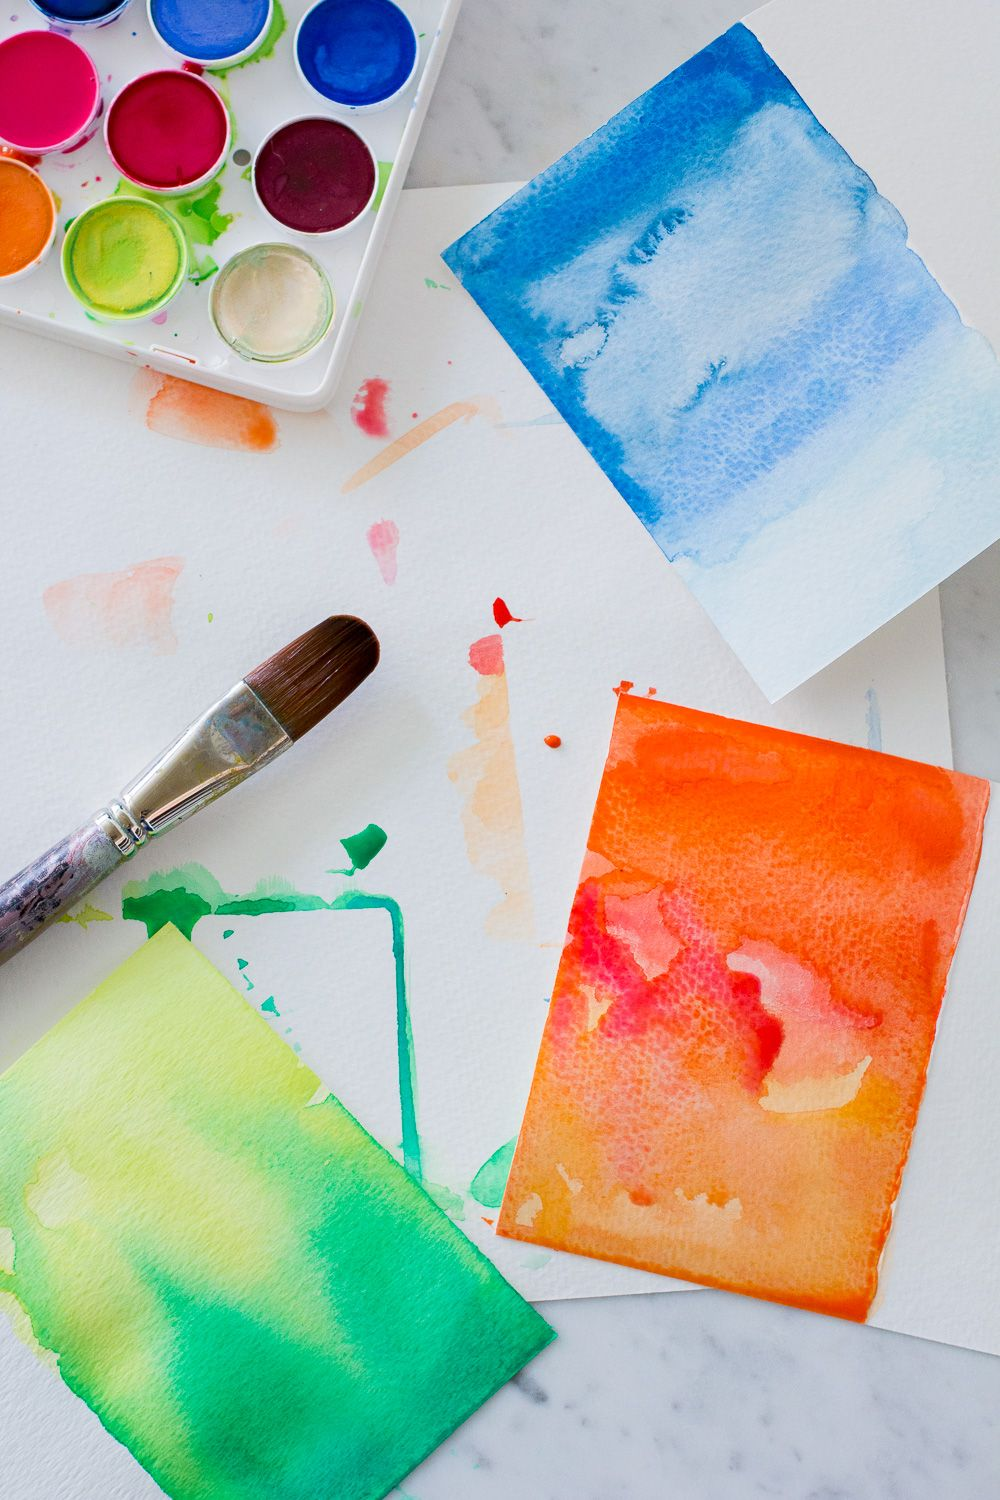 How To Paint Watercolor Easy Tutorials Step By Step And